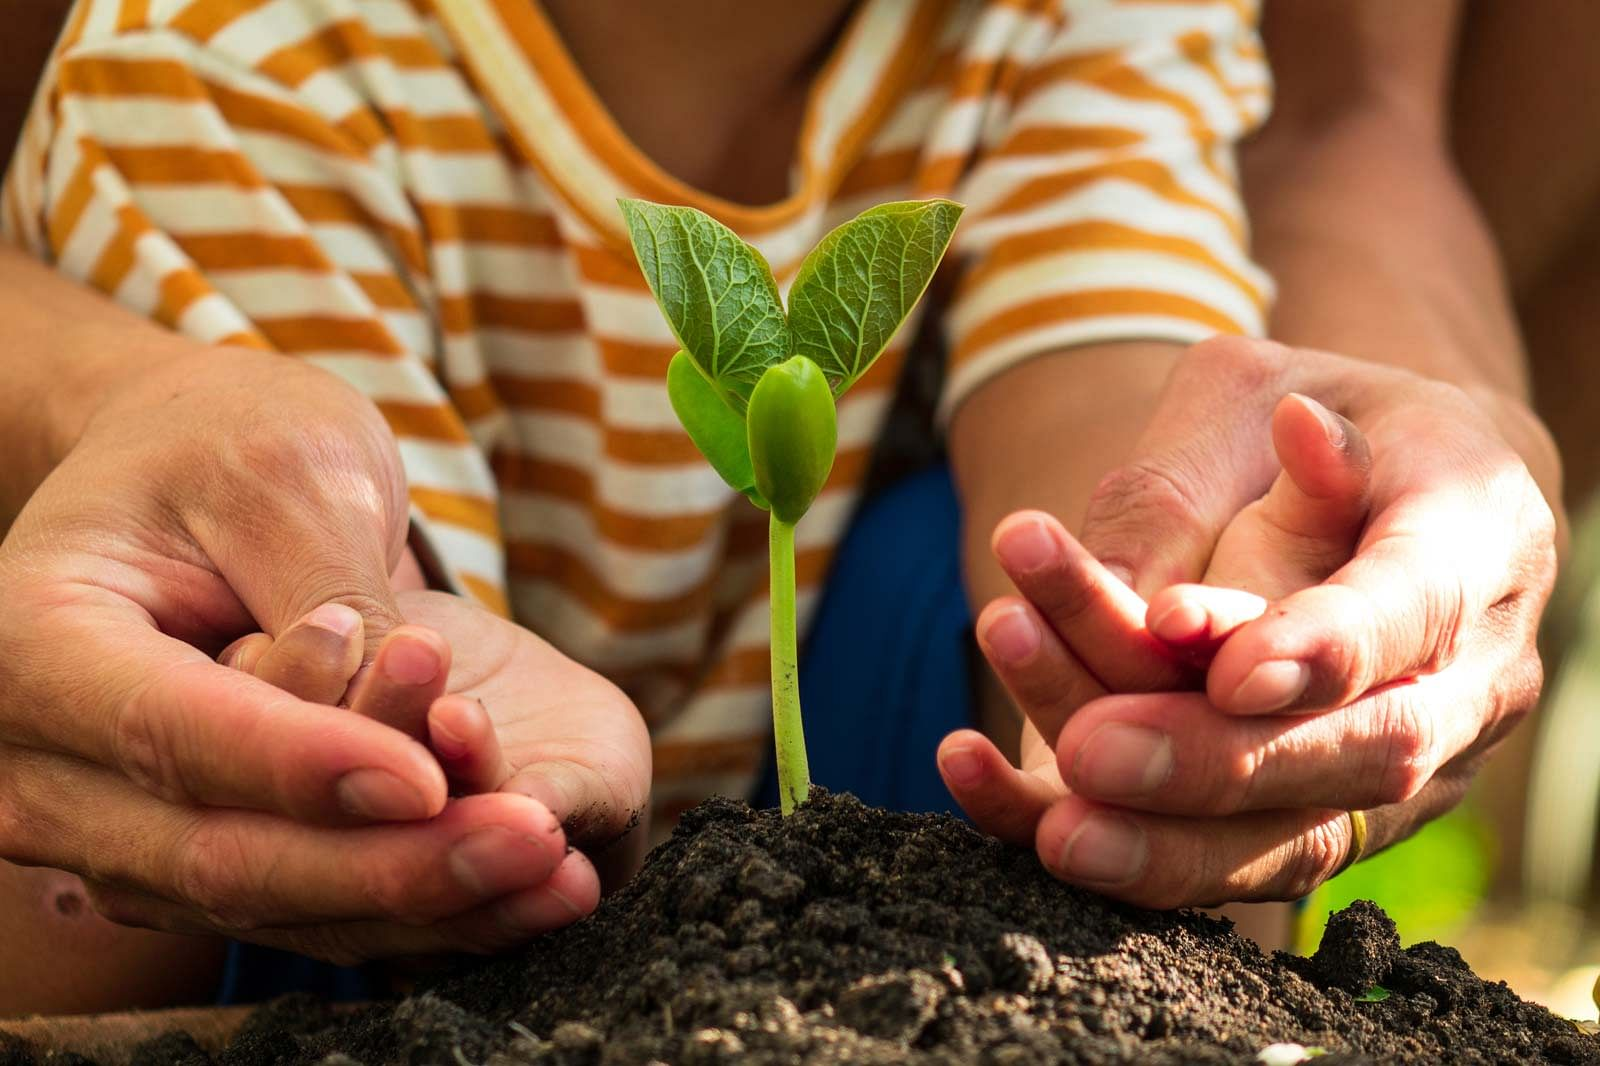 People's Association Parent Child course - Grow your own organic herbs and spices